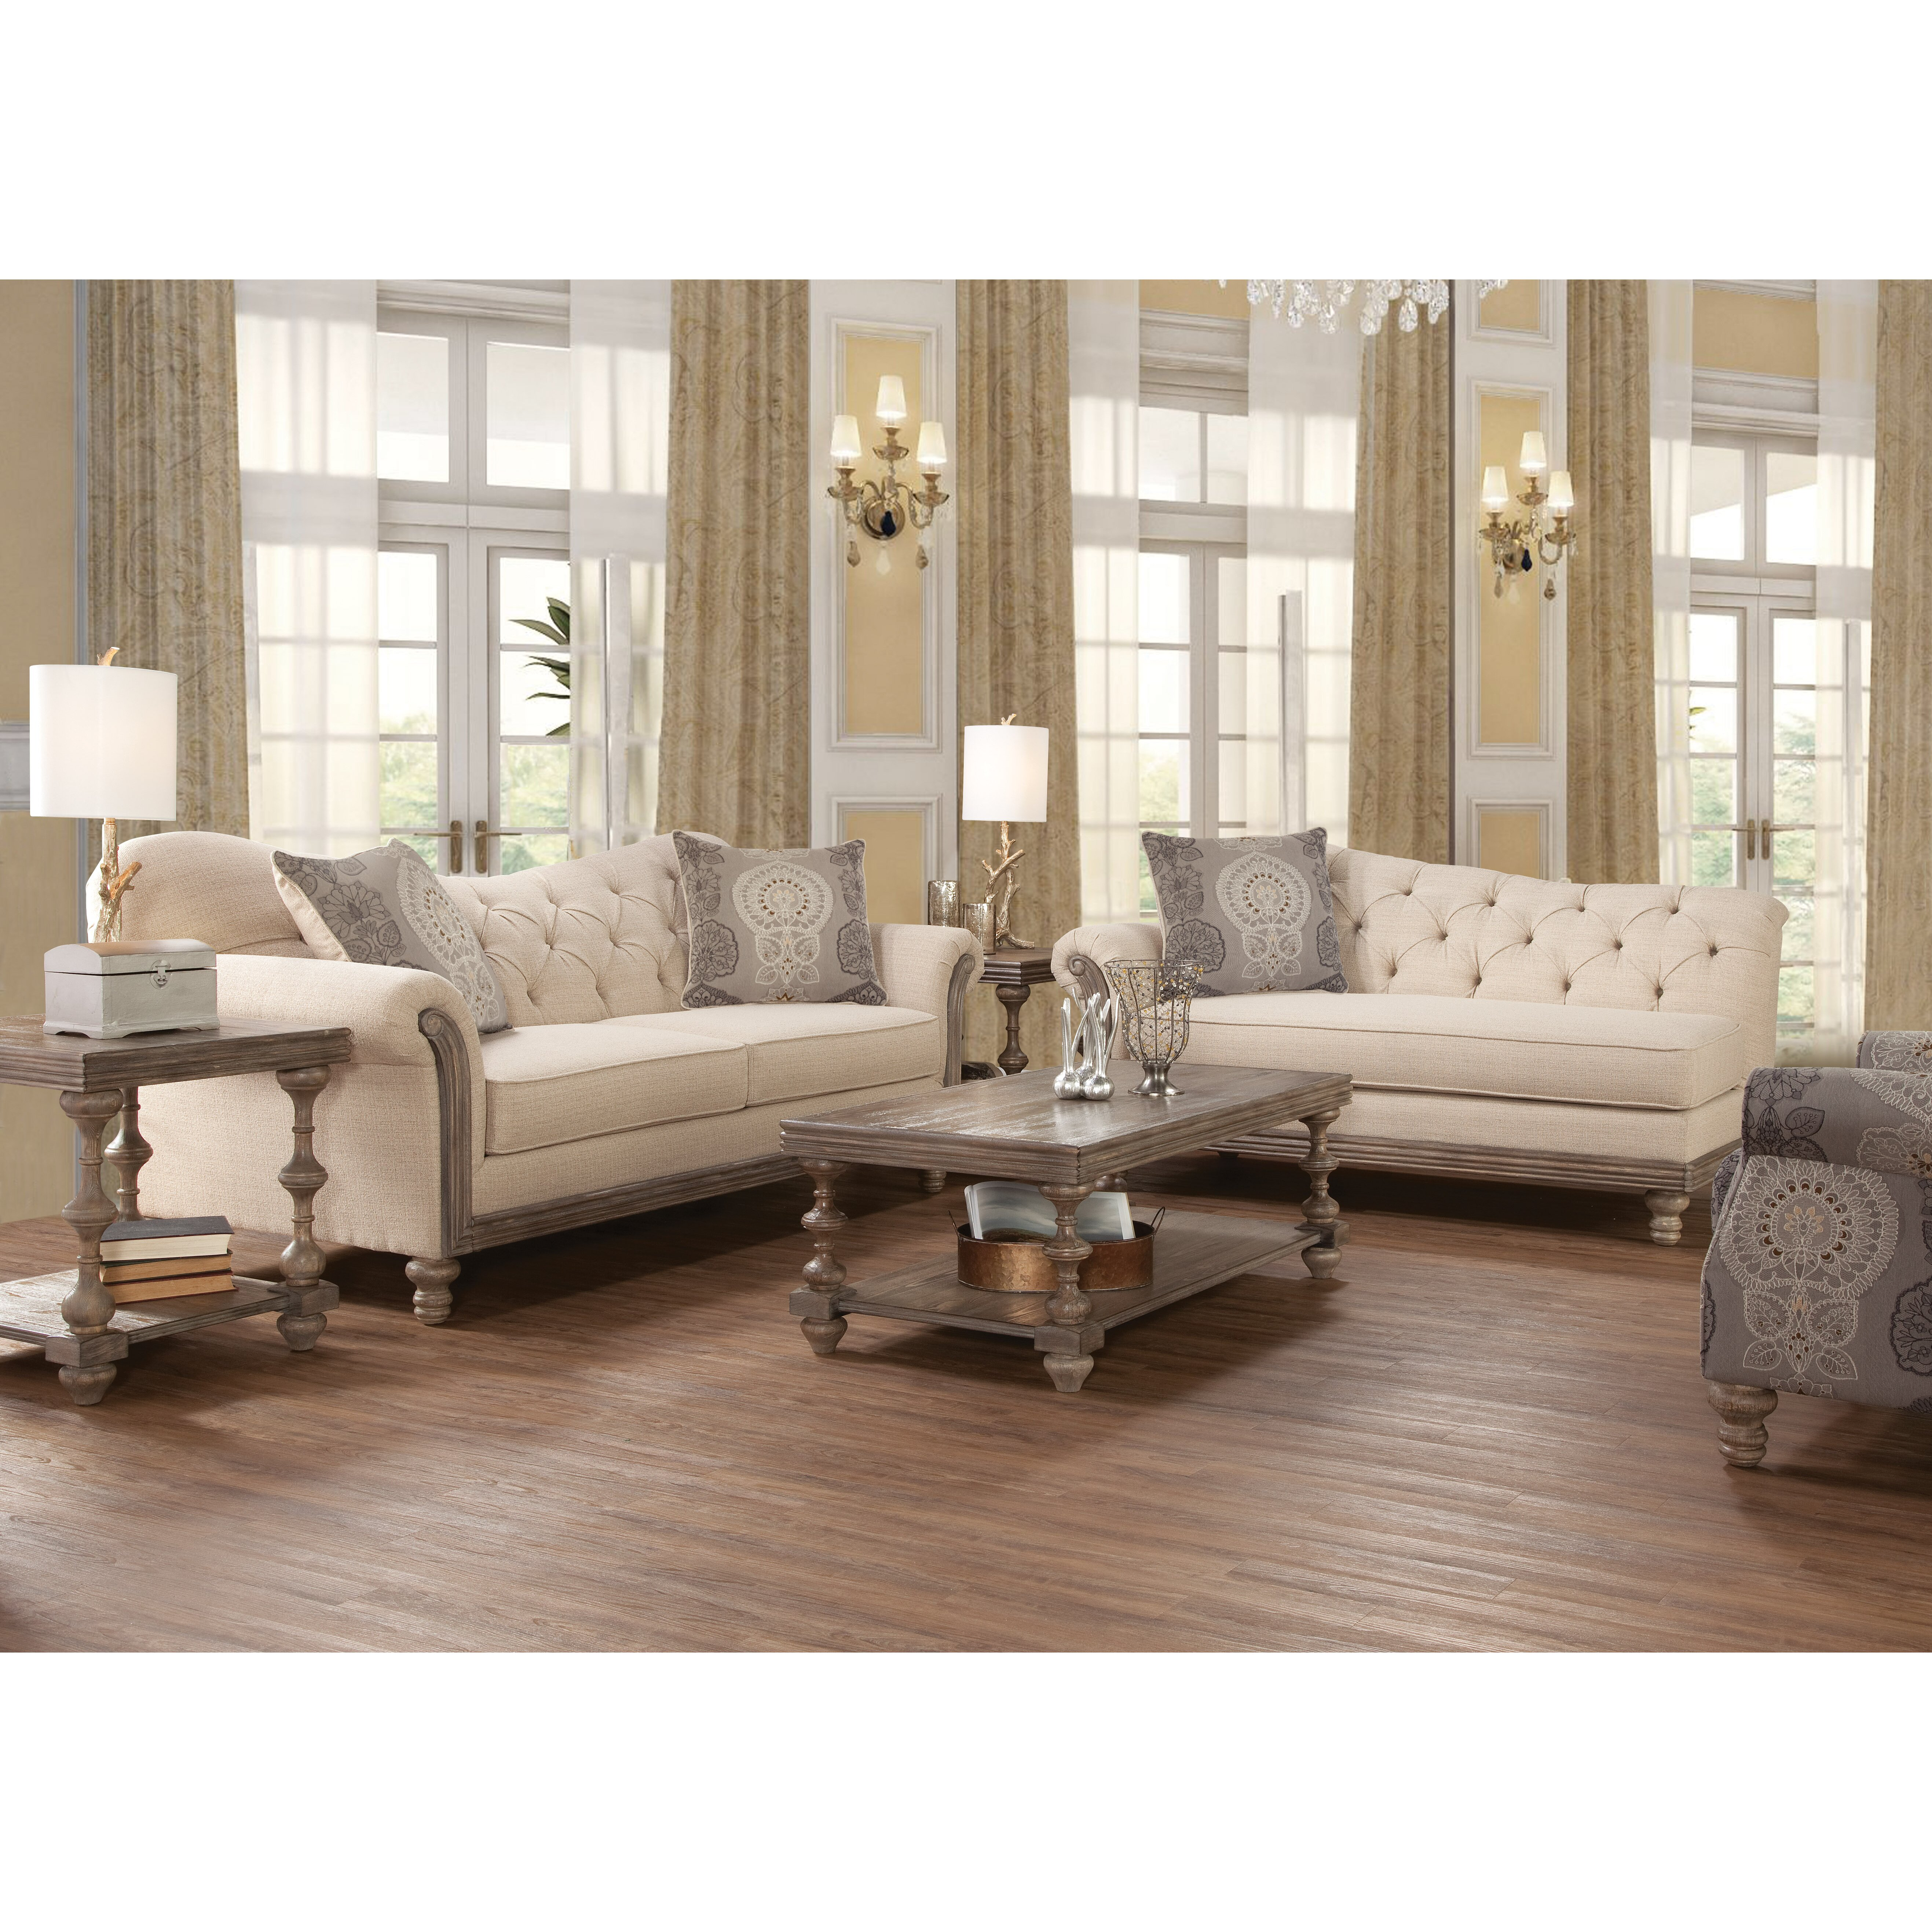 Bungalow rose roosa living room collection reviews wayfair for Living room furniture